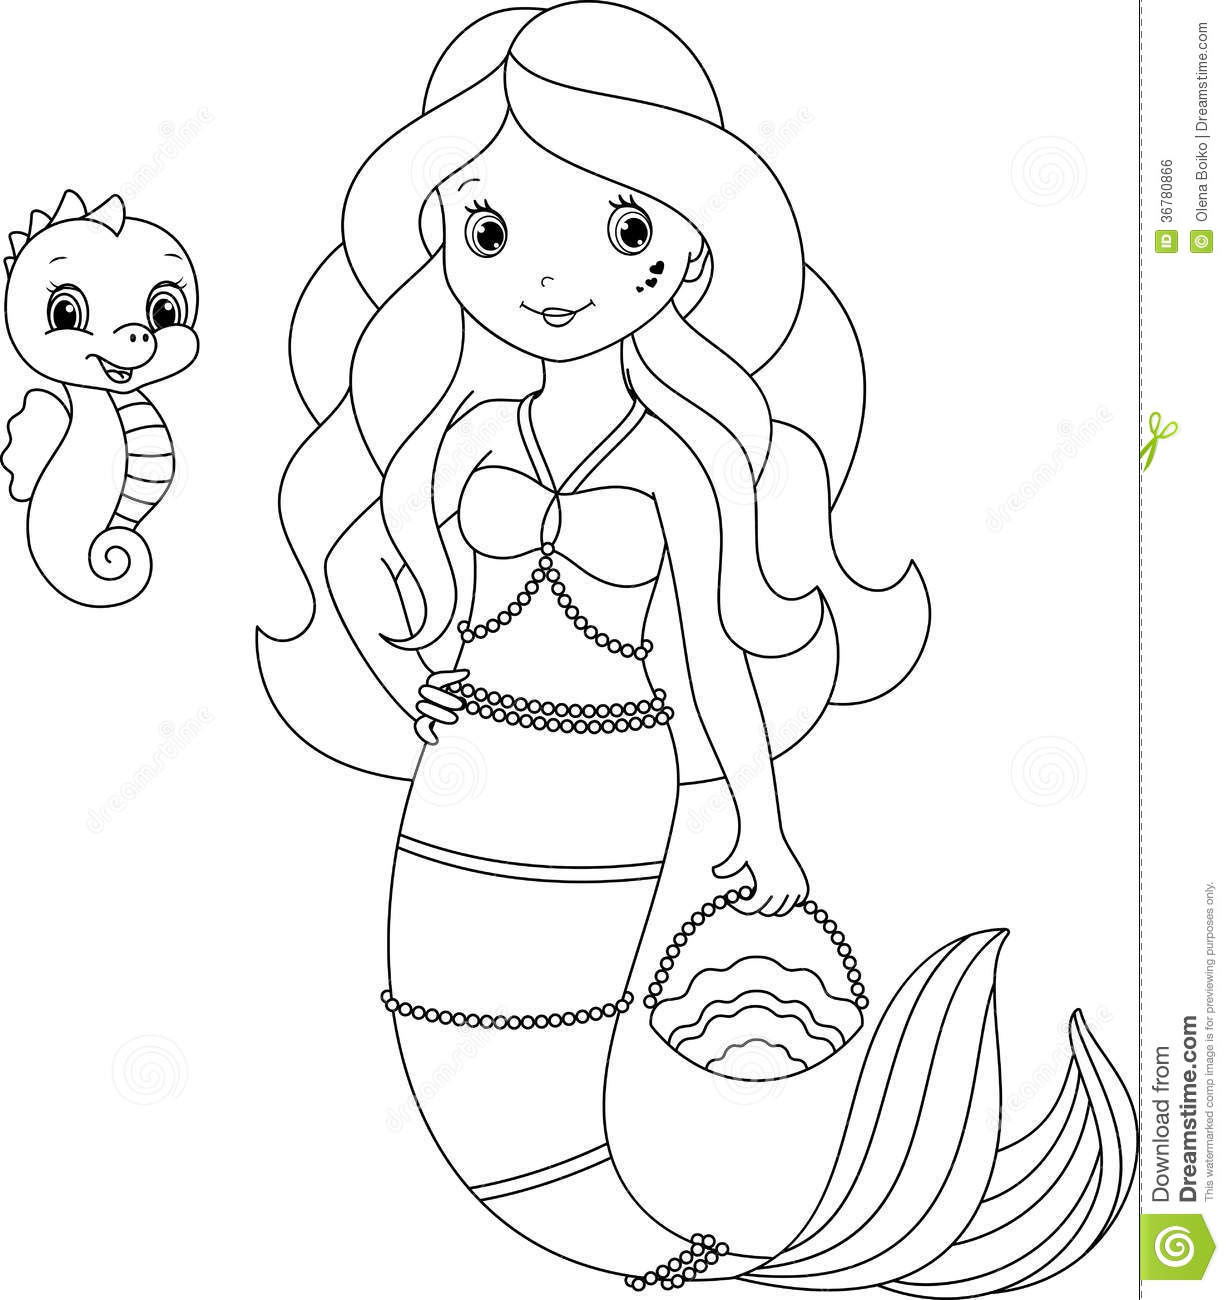 Mermaid Coloring Pages To Download And Print For Free Coloring Pages